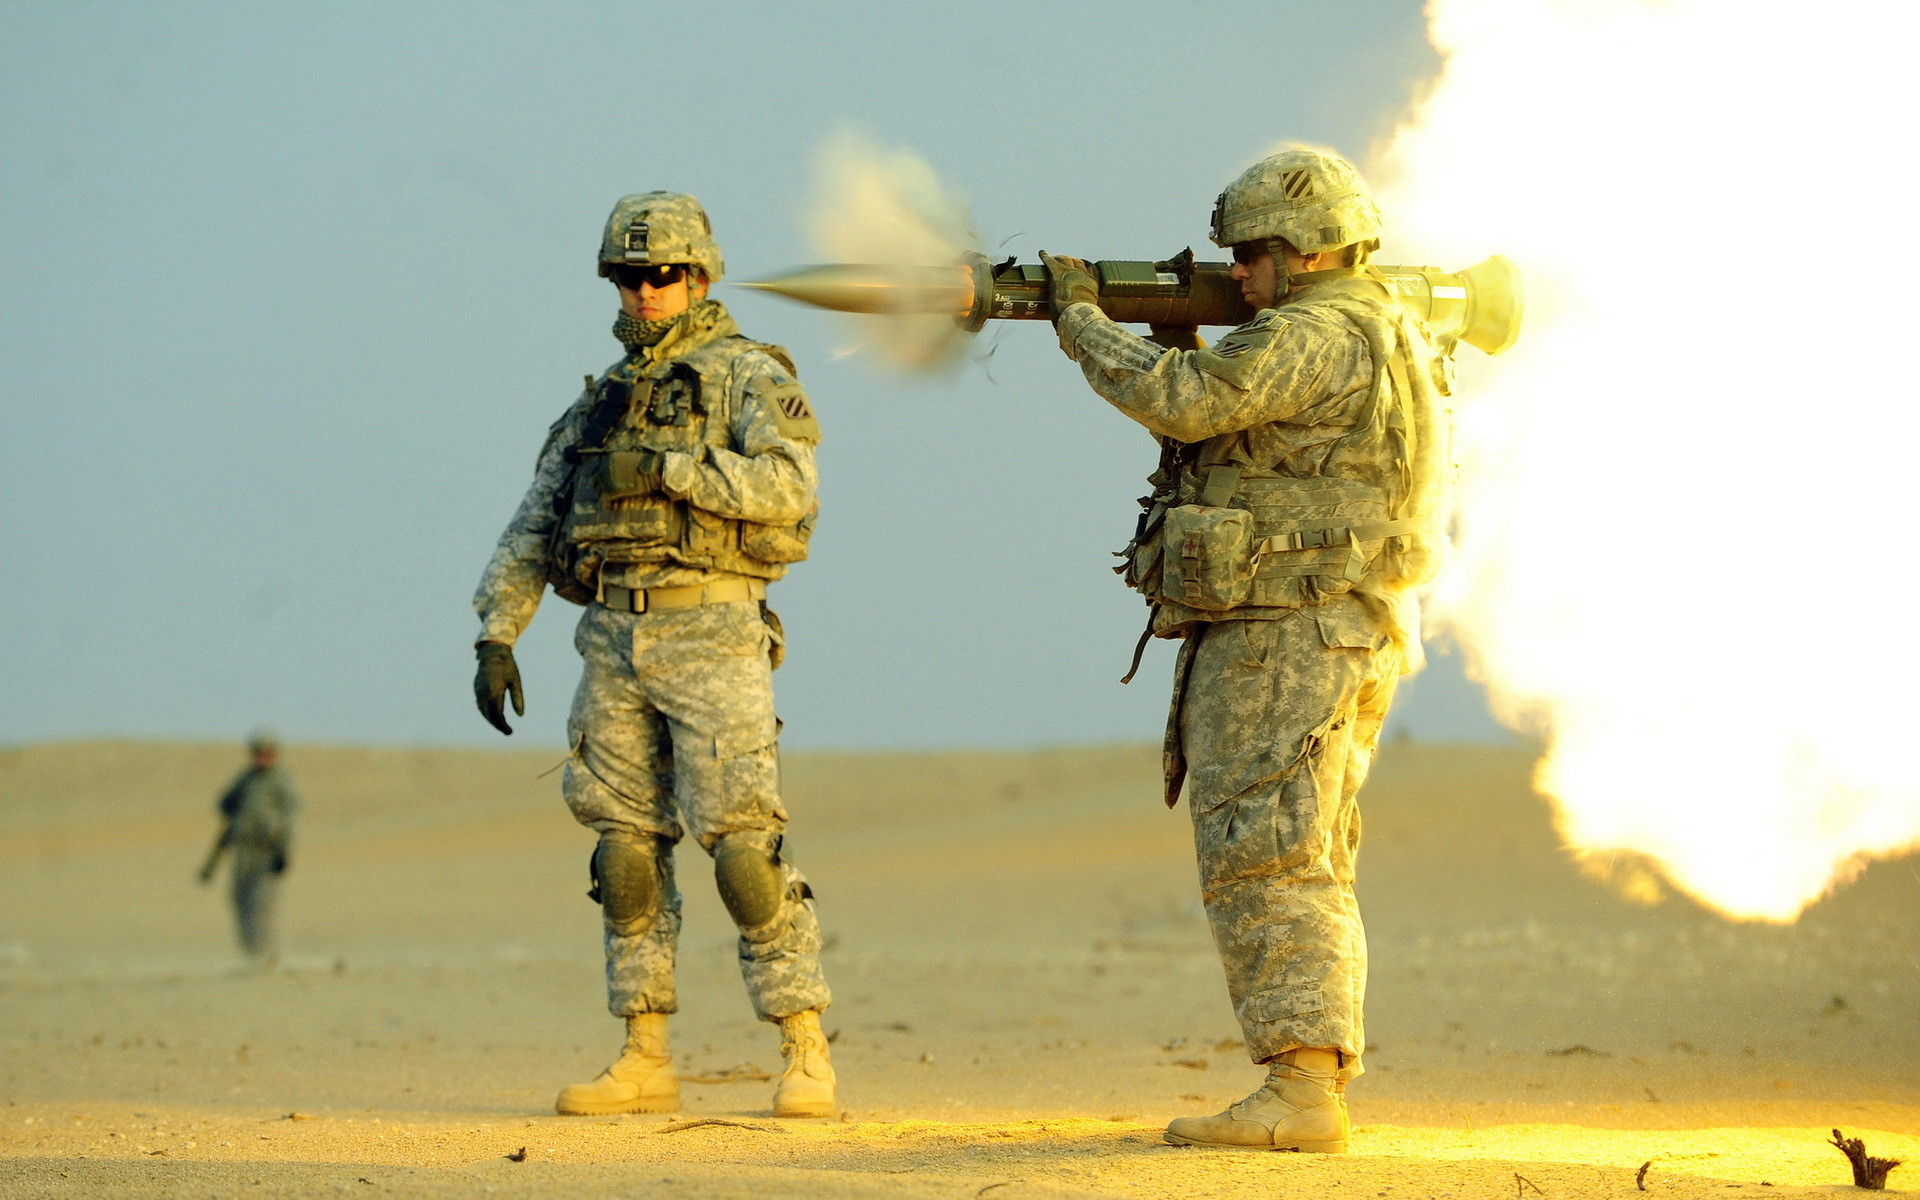 Soldiers Grenade launcher Men US army AT-4 Firing Army military wallpaper